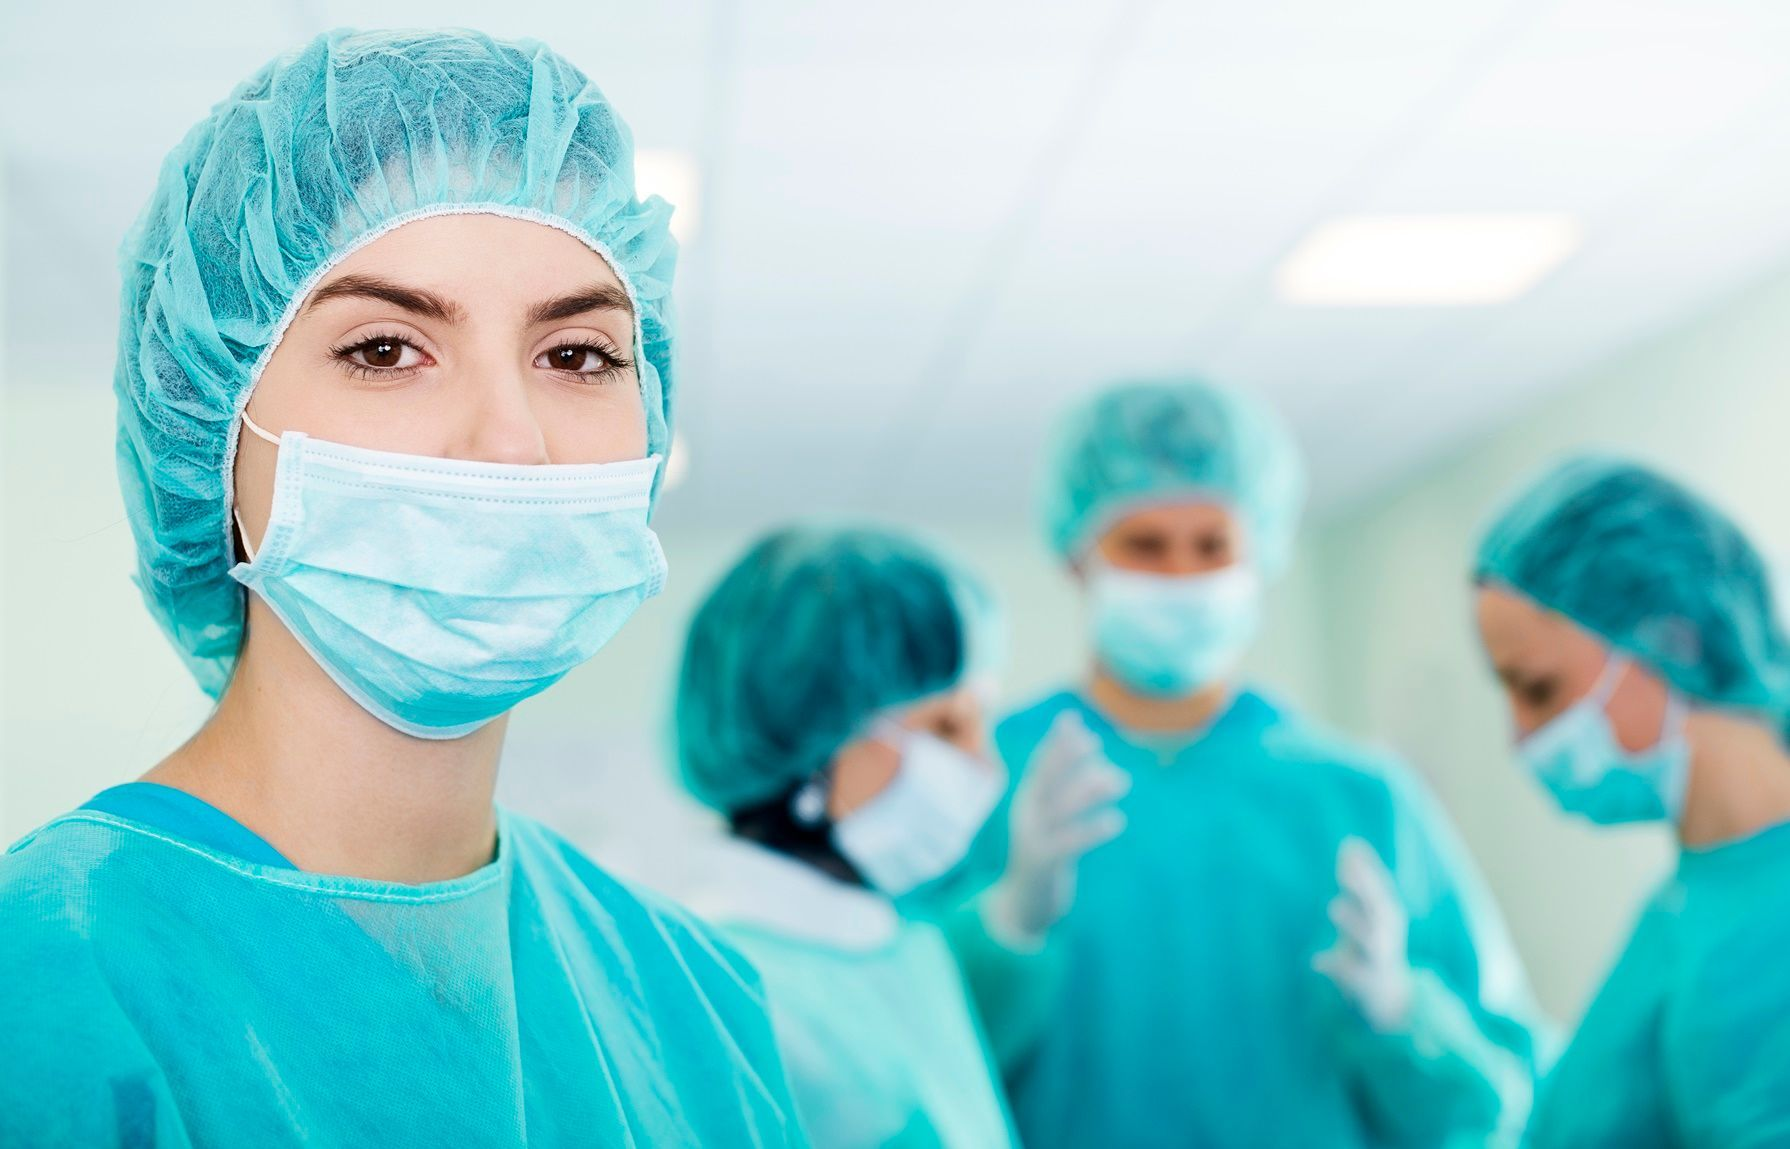 Most requested specialties in medical shifts